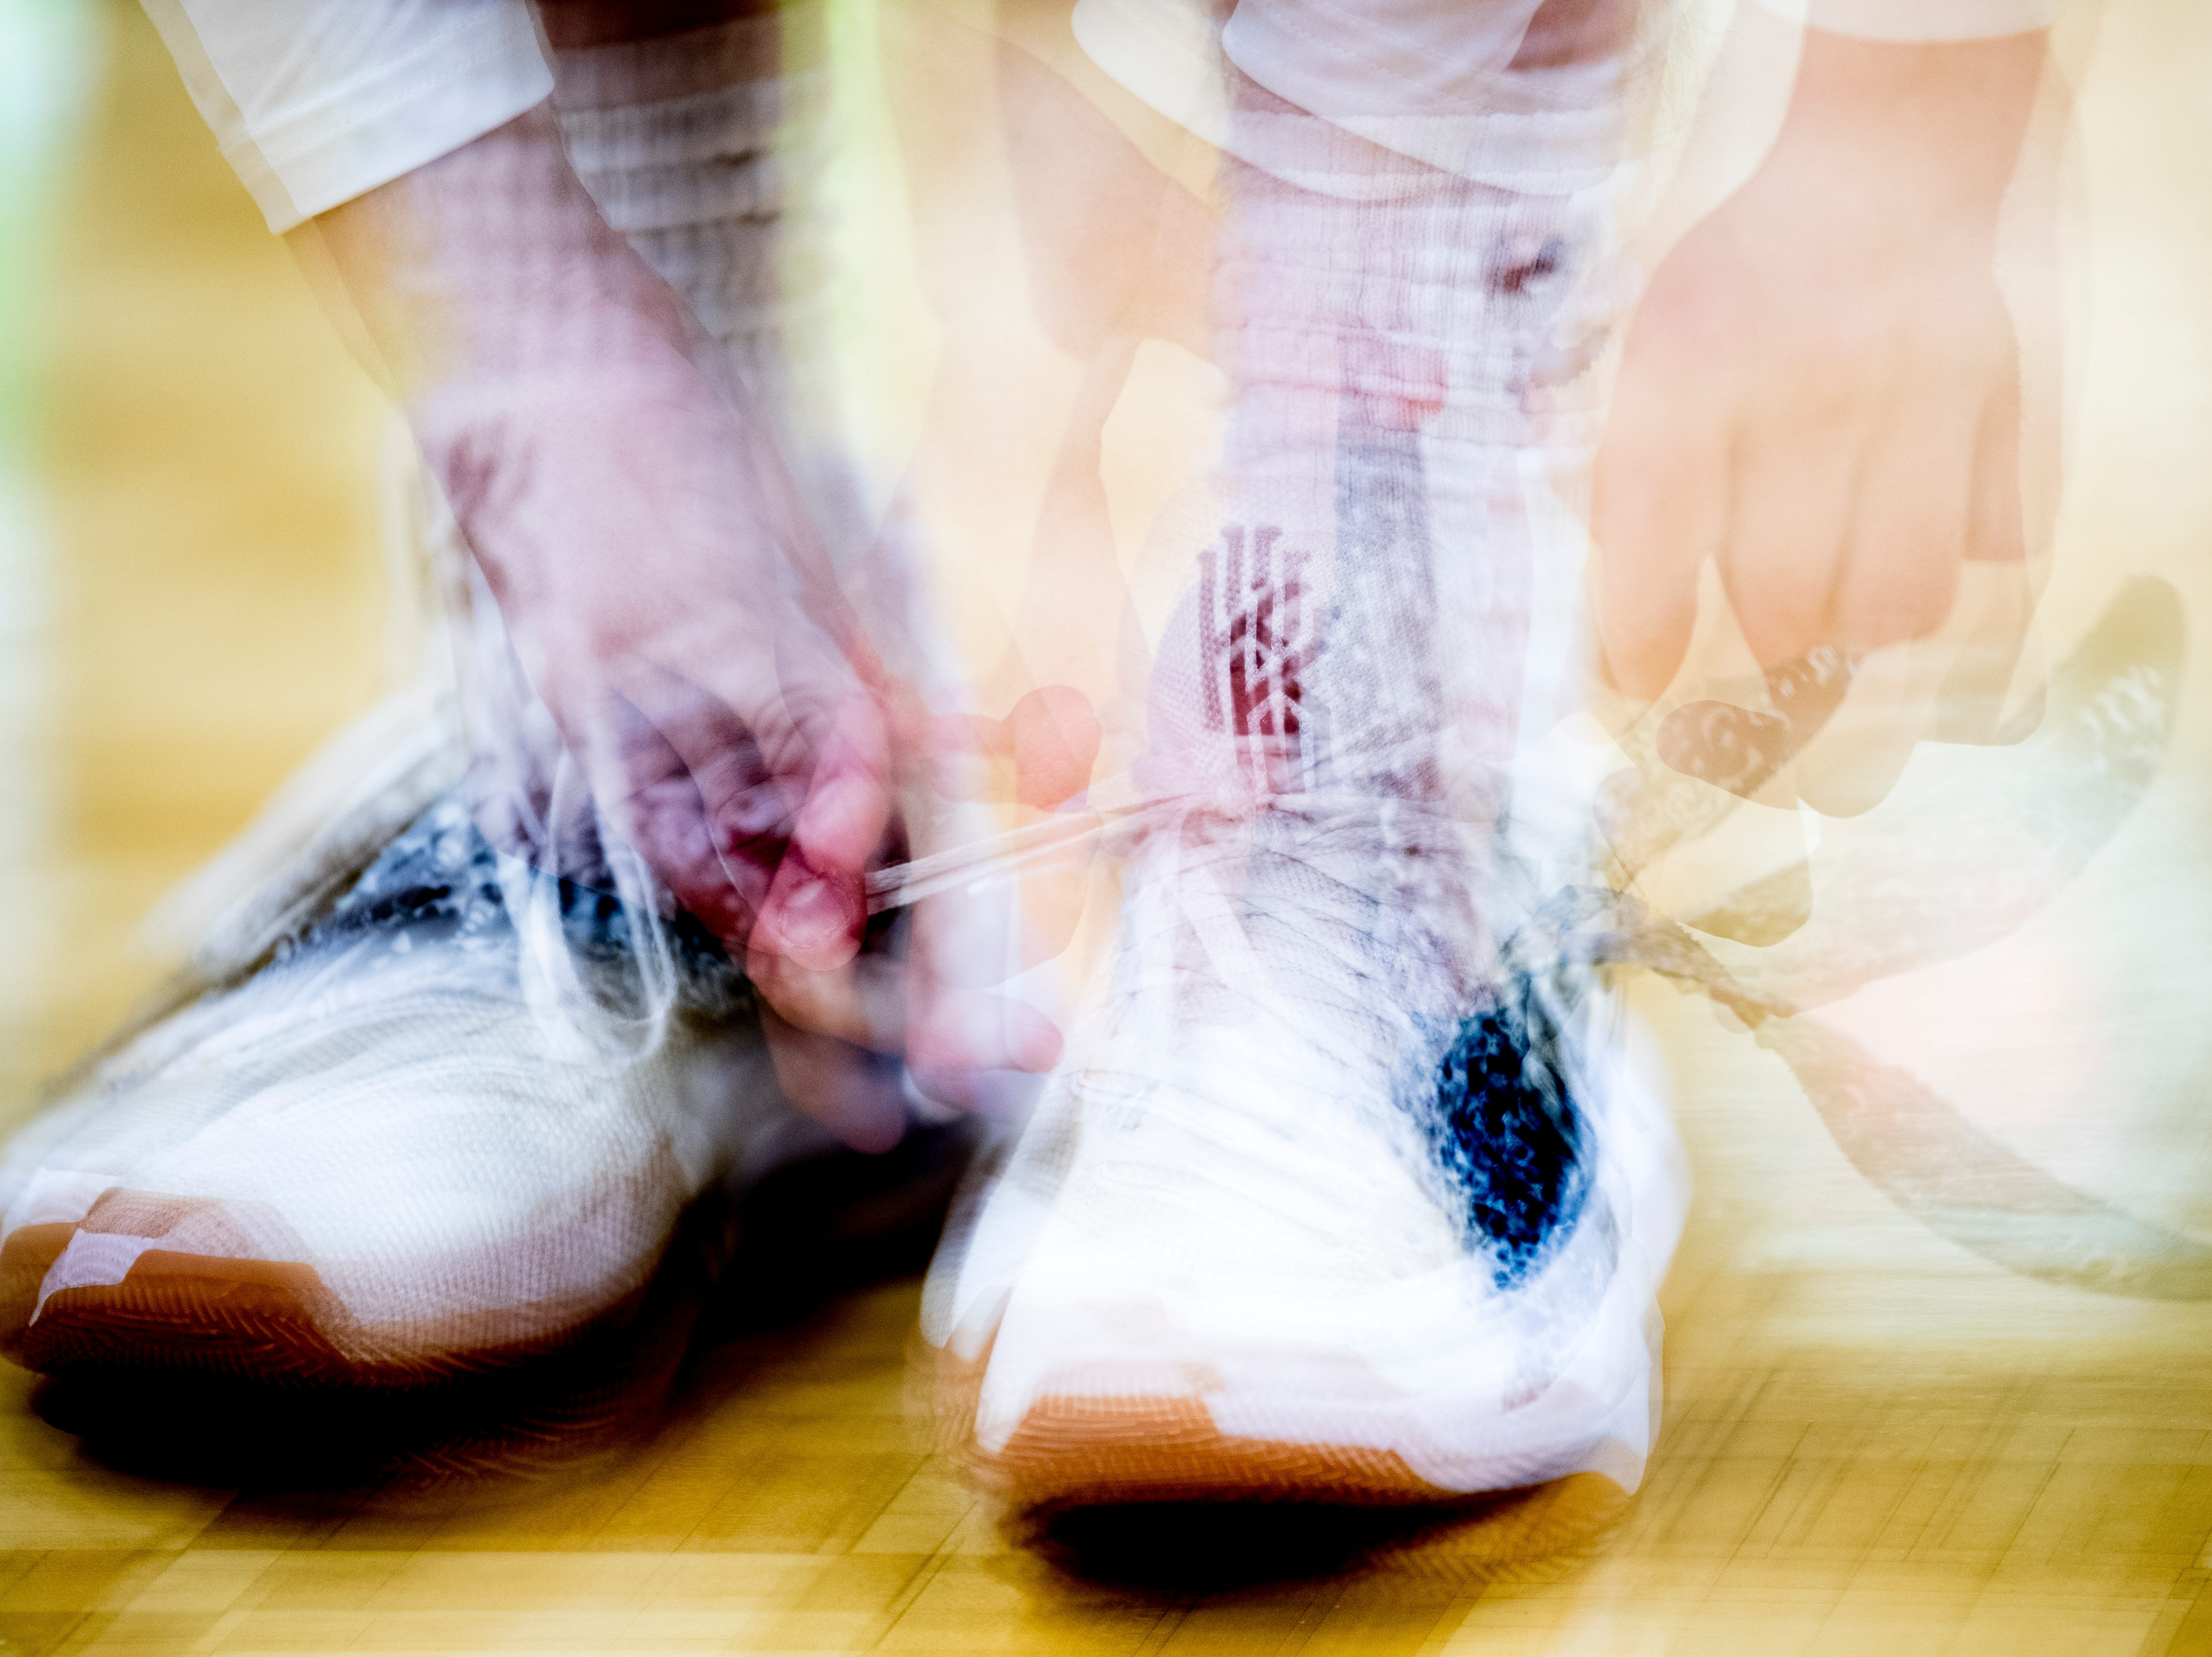 A Bearden player fastens their shoes during a game between Bearden and Catholic at Bearden High School in Knoxville, Tennessee on Thursday, January 10, 2019.